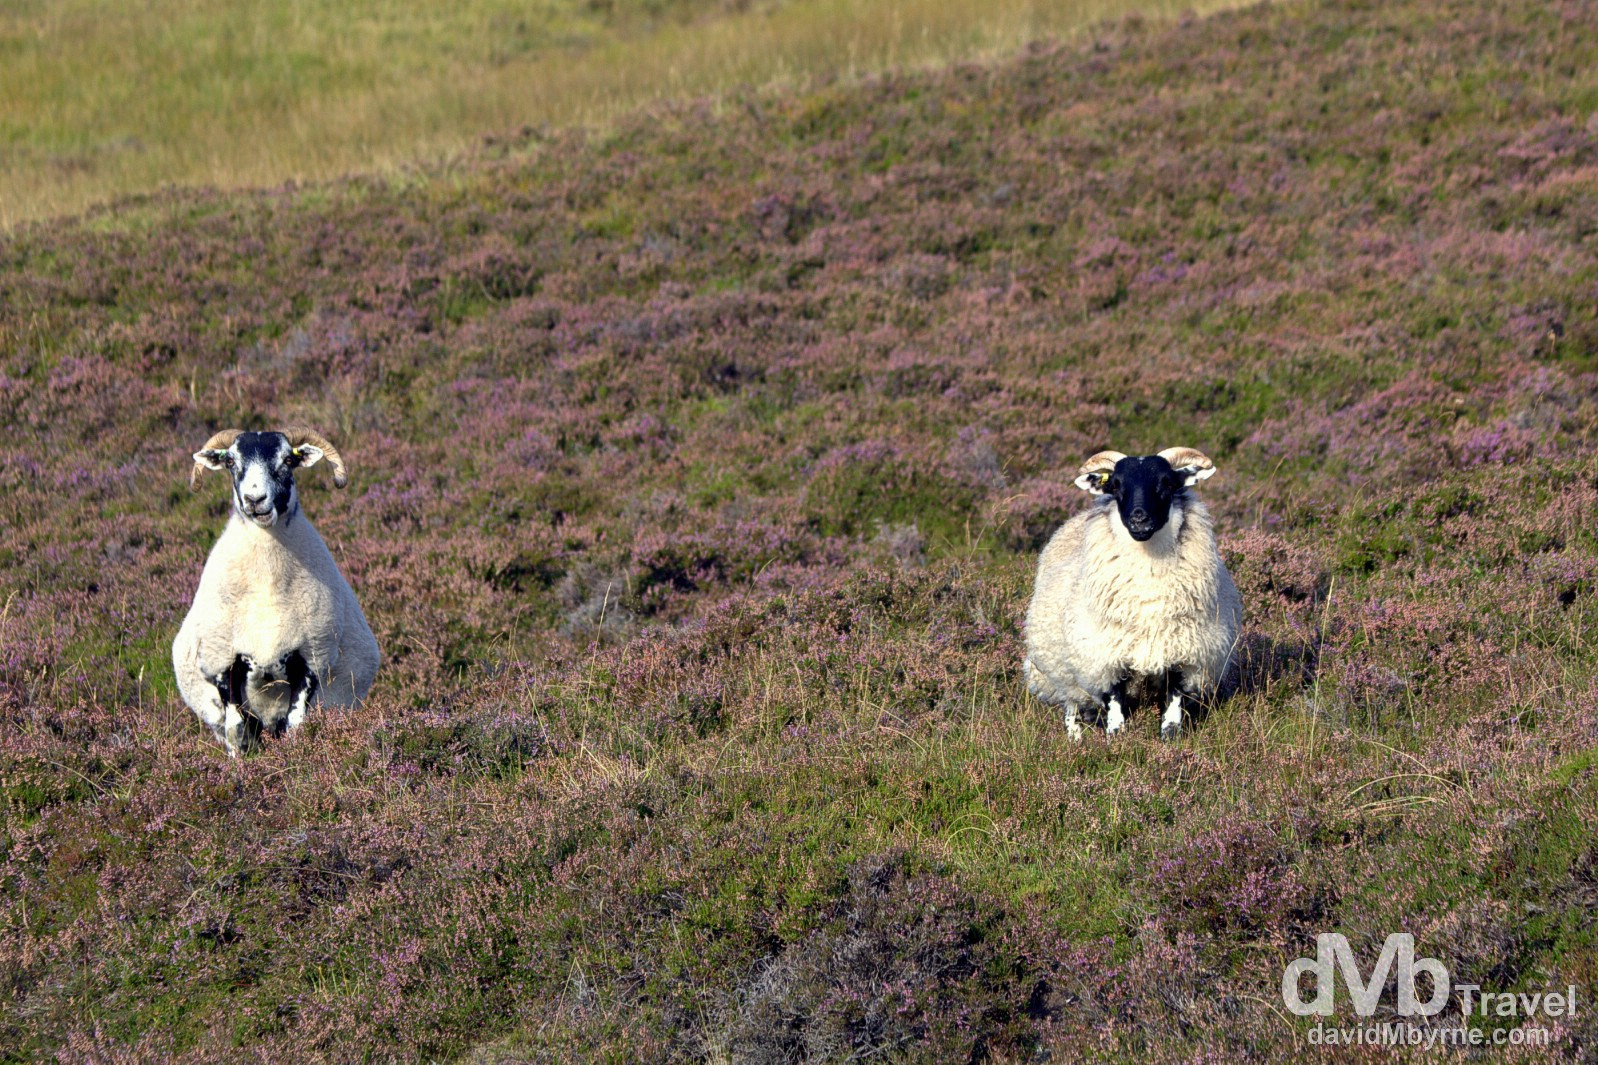 Interested bystanders. Sheep by the side of the road in Cairngorms National Park, Scotland. September 13, 2014.